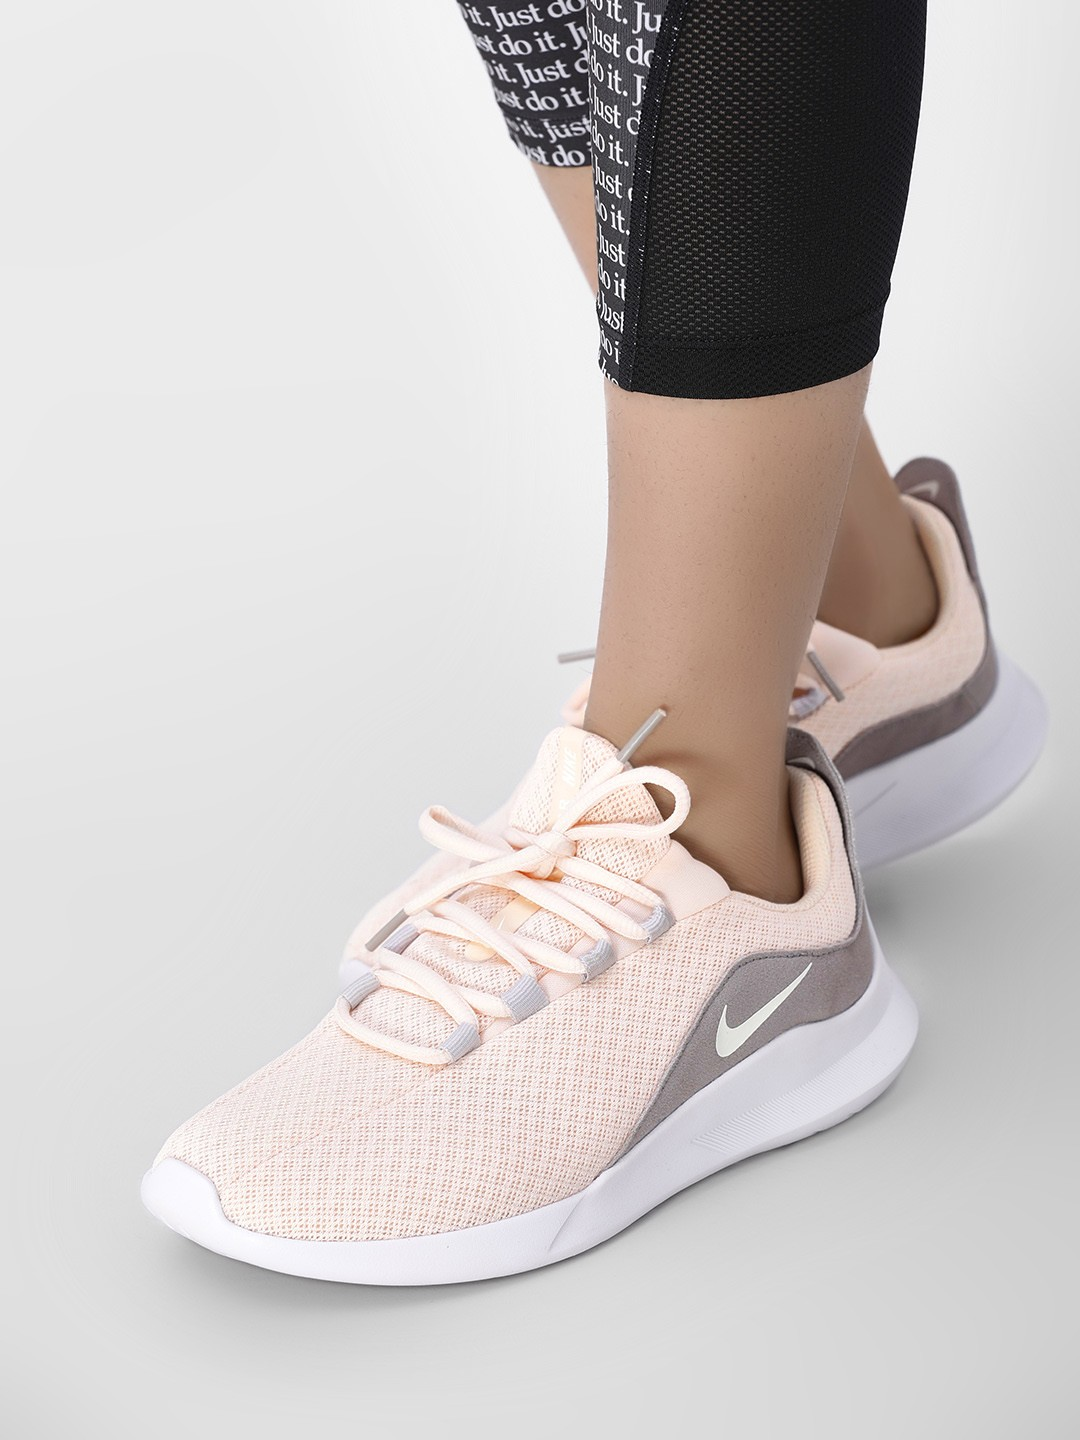 Buy Nike Cream Viale Running Shoes for Girls Online in India